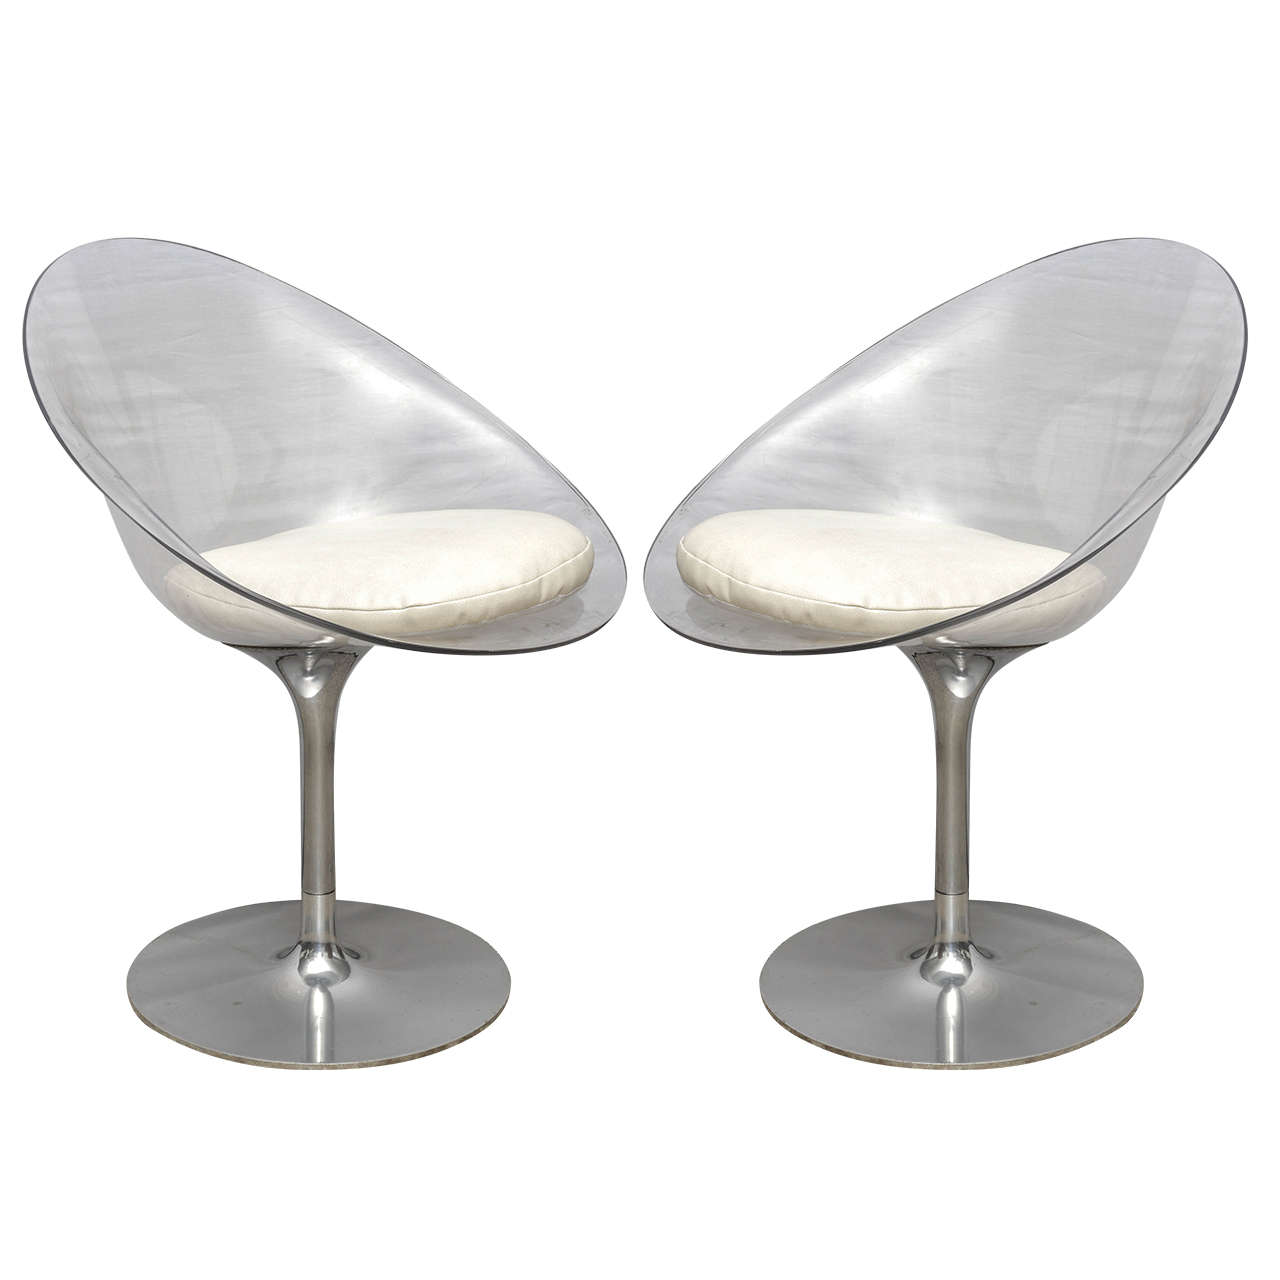 Pair of Philippe Starck of Lucite and Chrome by Kartell Eros Swivel Chairs